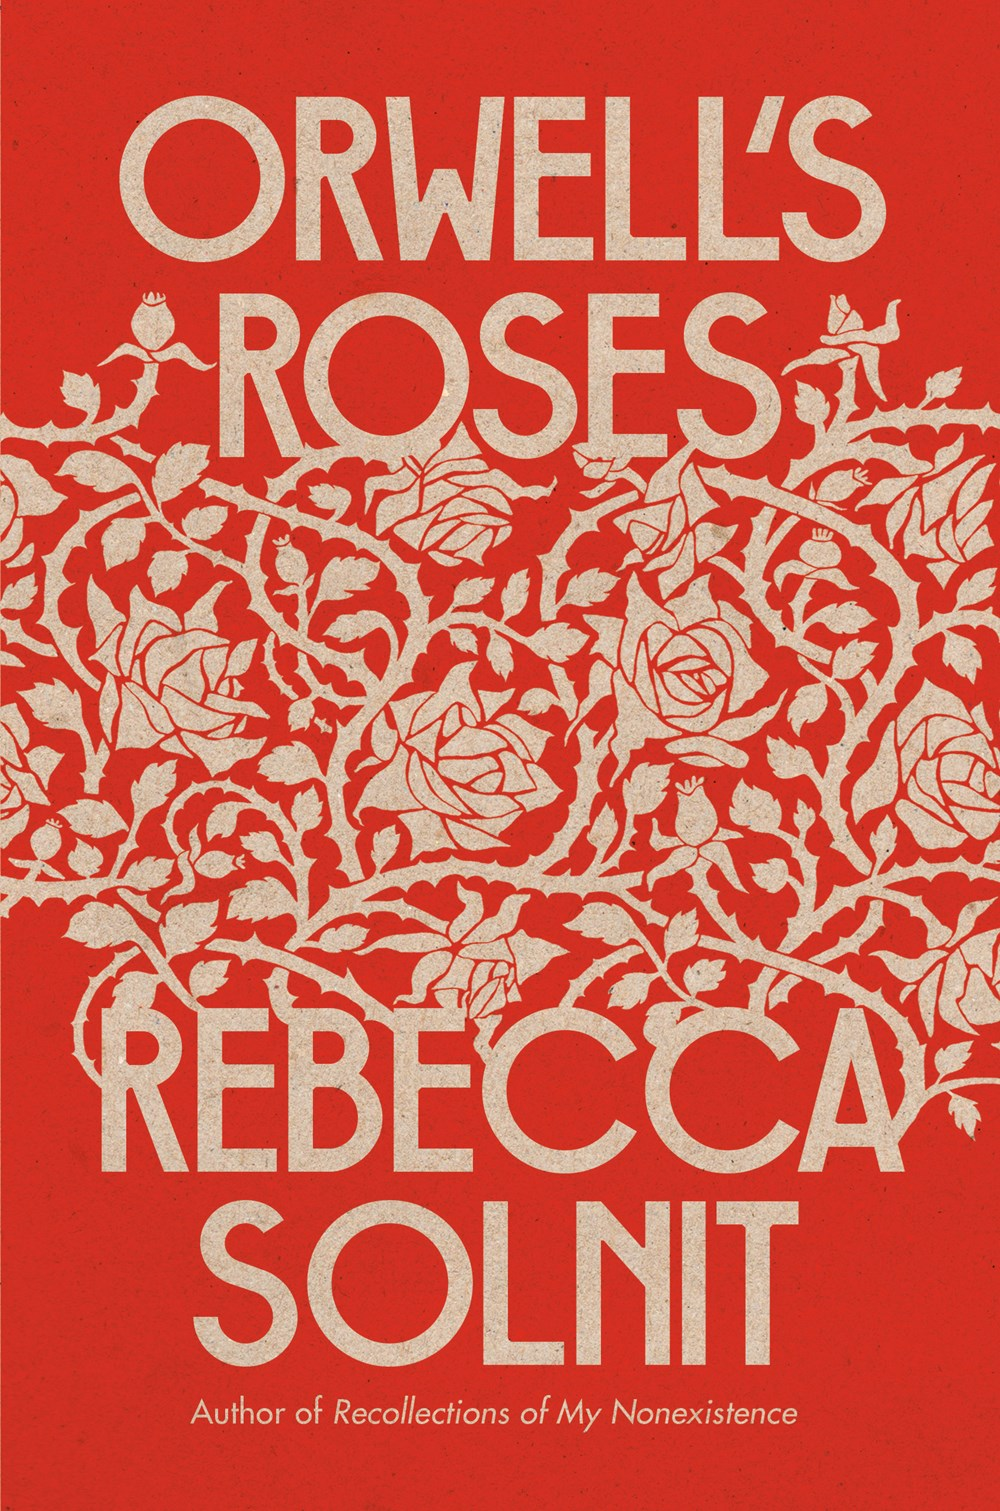 Orwell's Roses by Rebecca Solnit